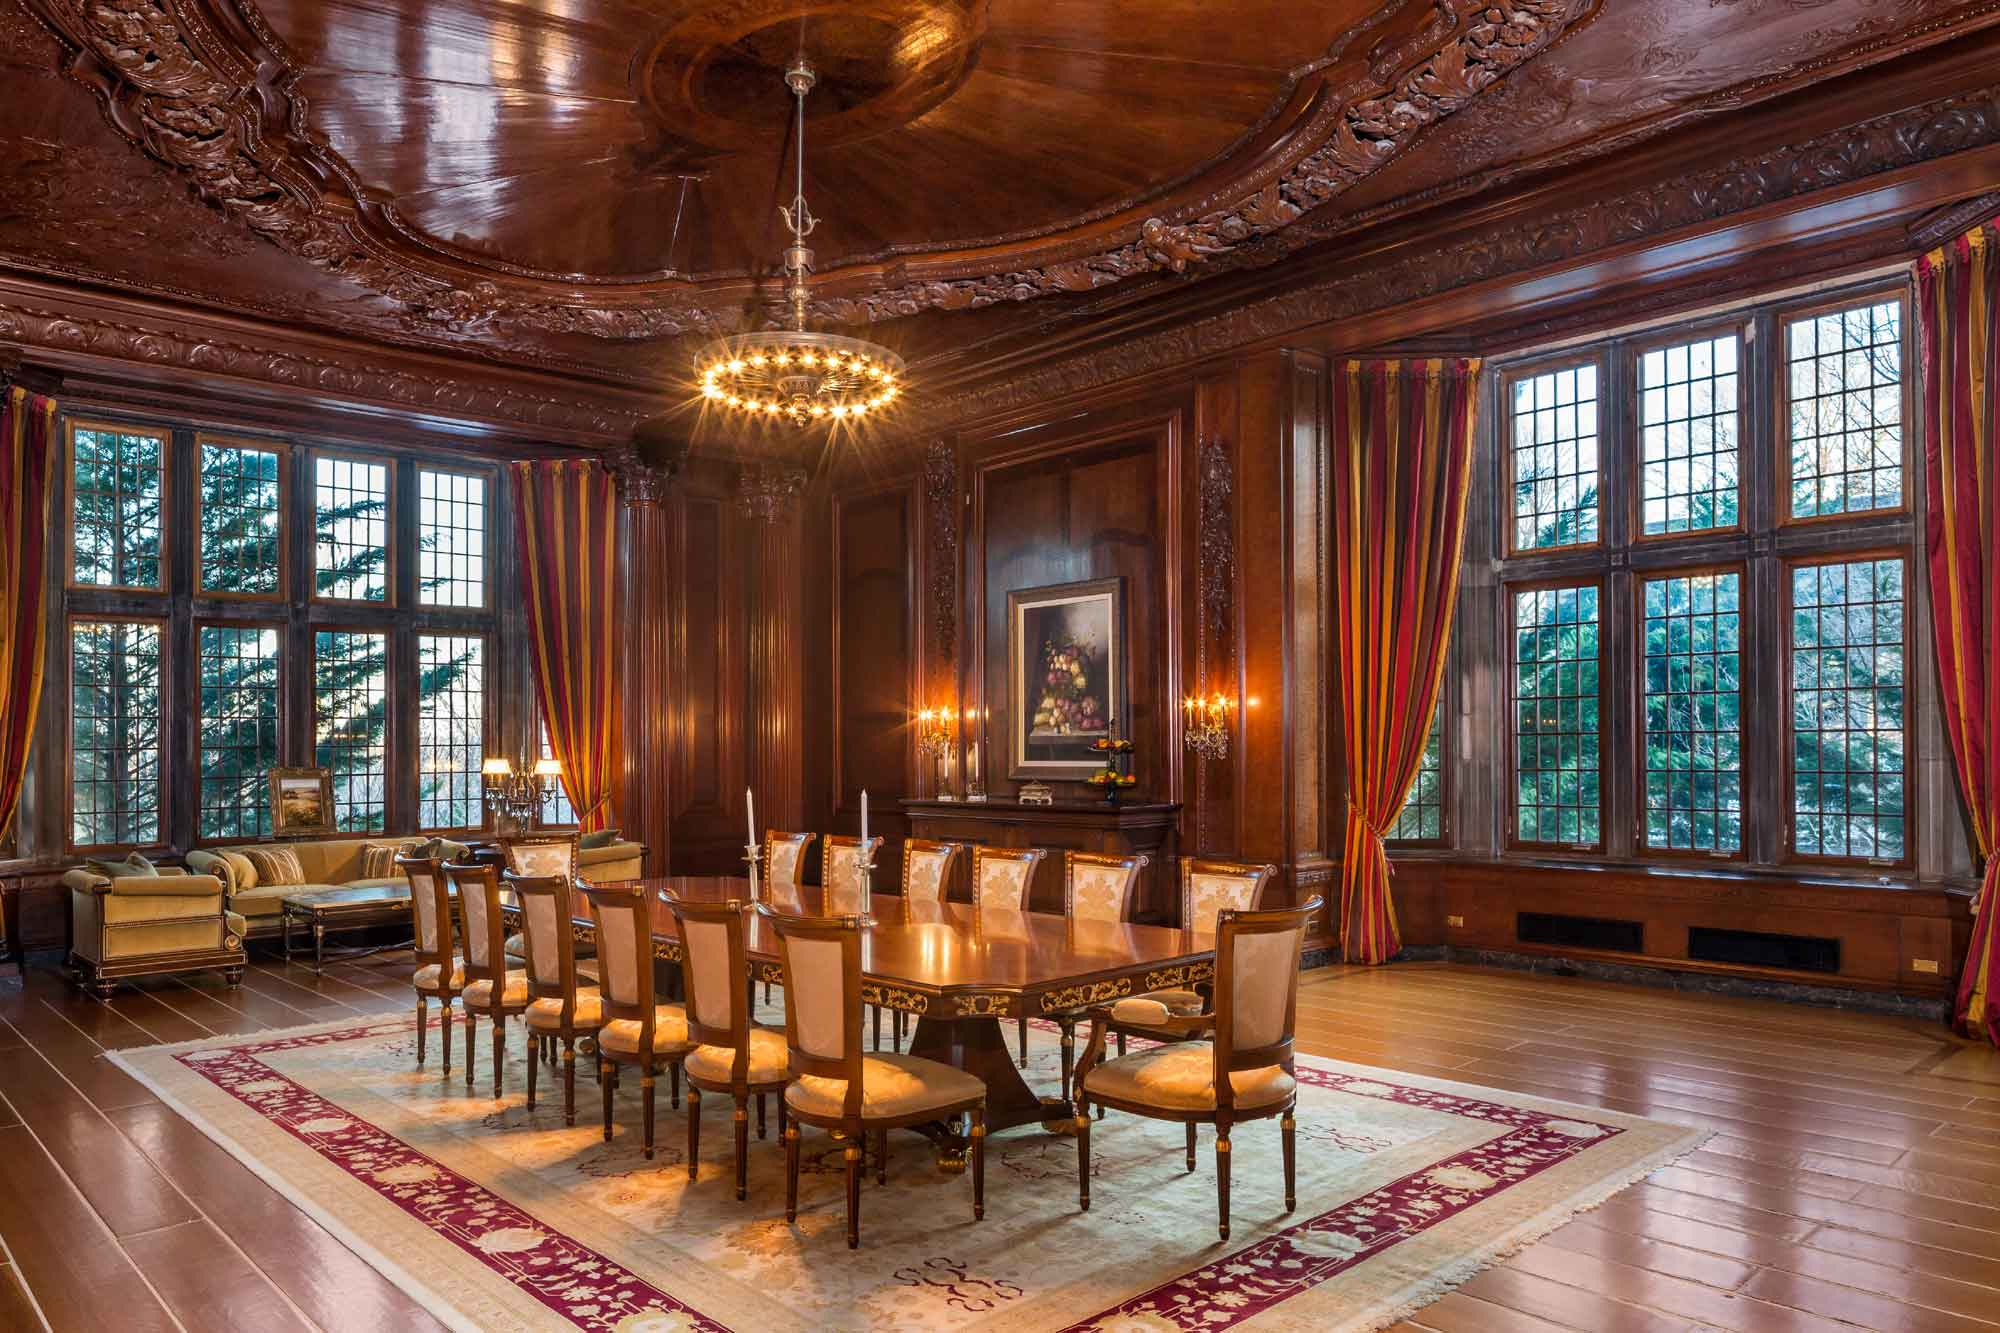 The formal dining room features a spectacular carved wooden ceiling.